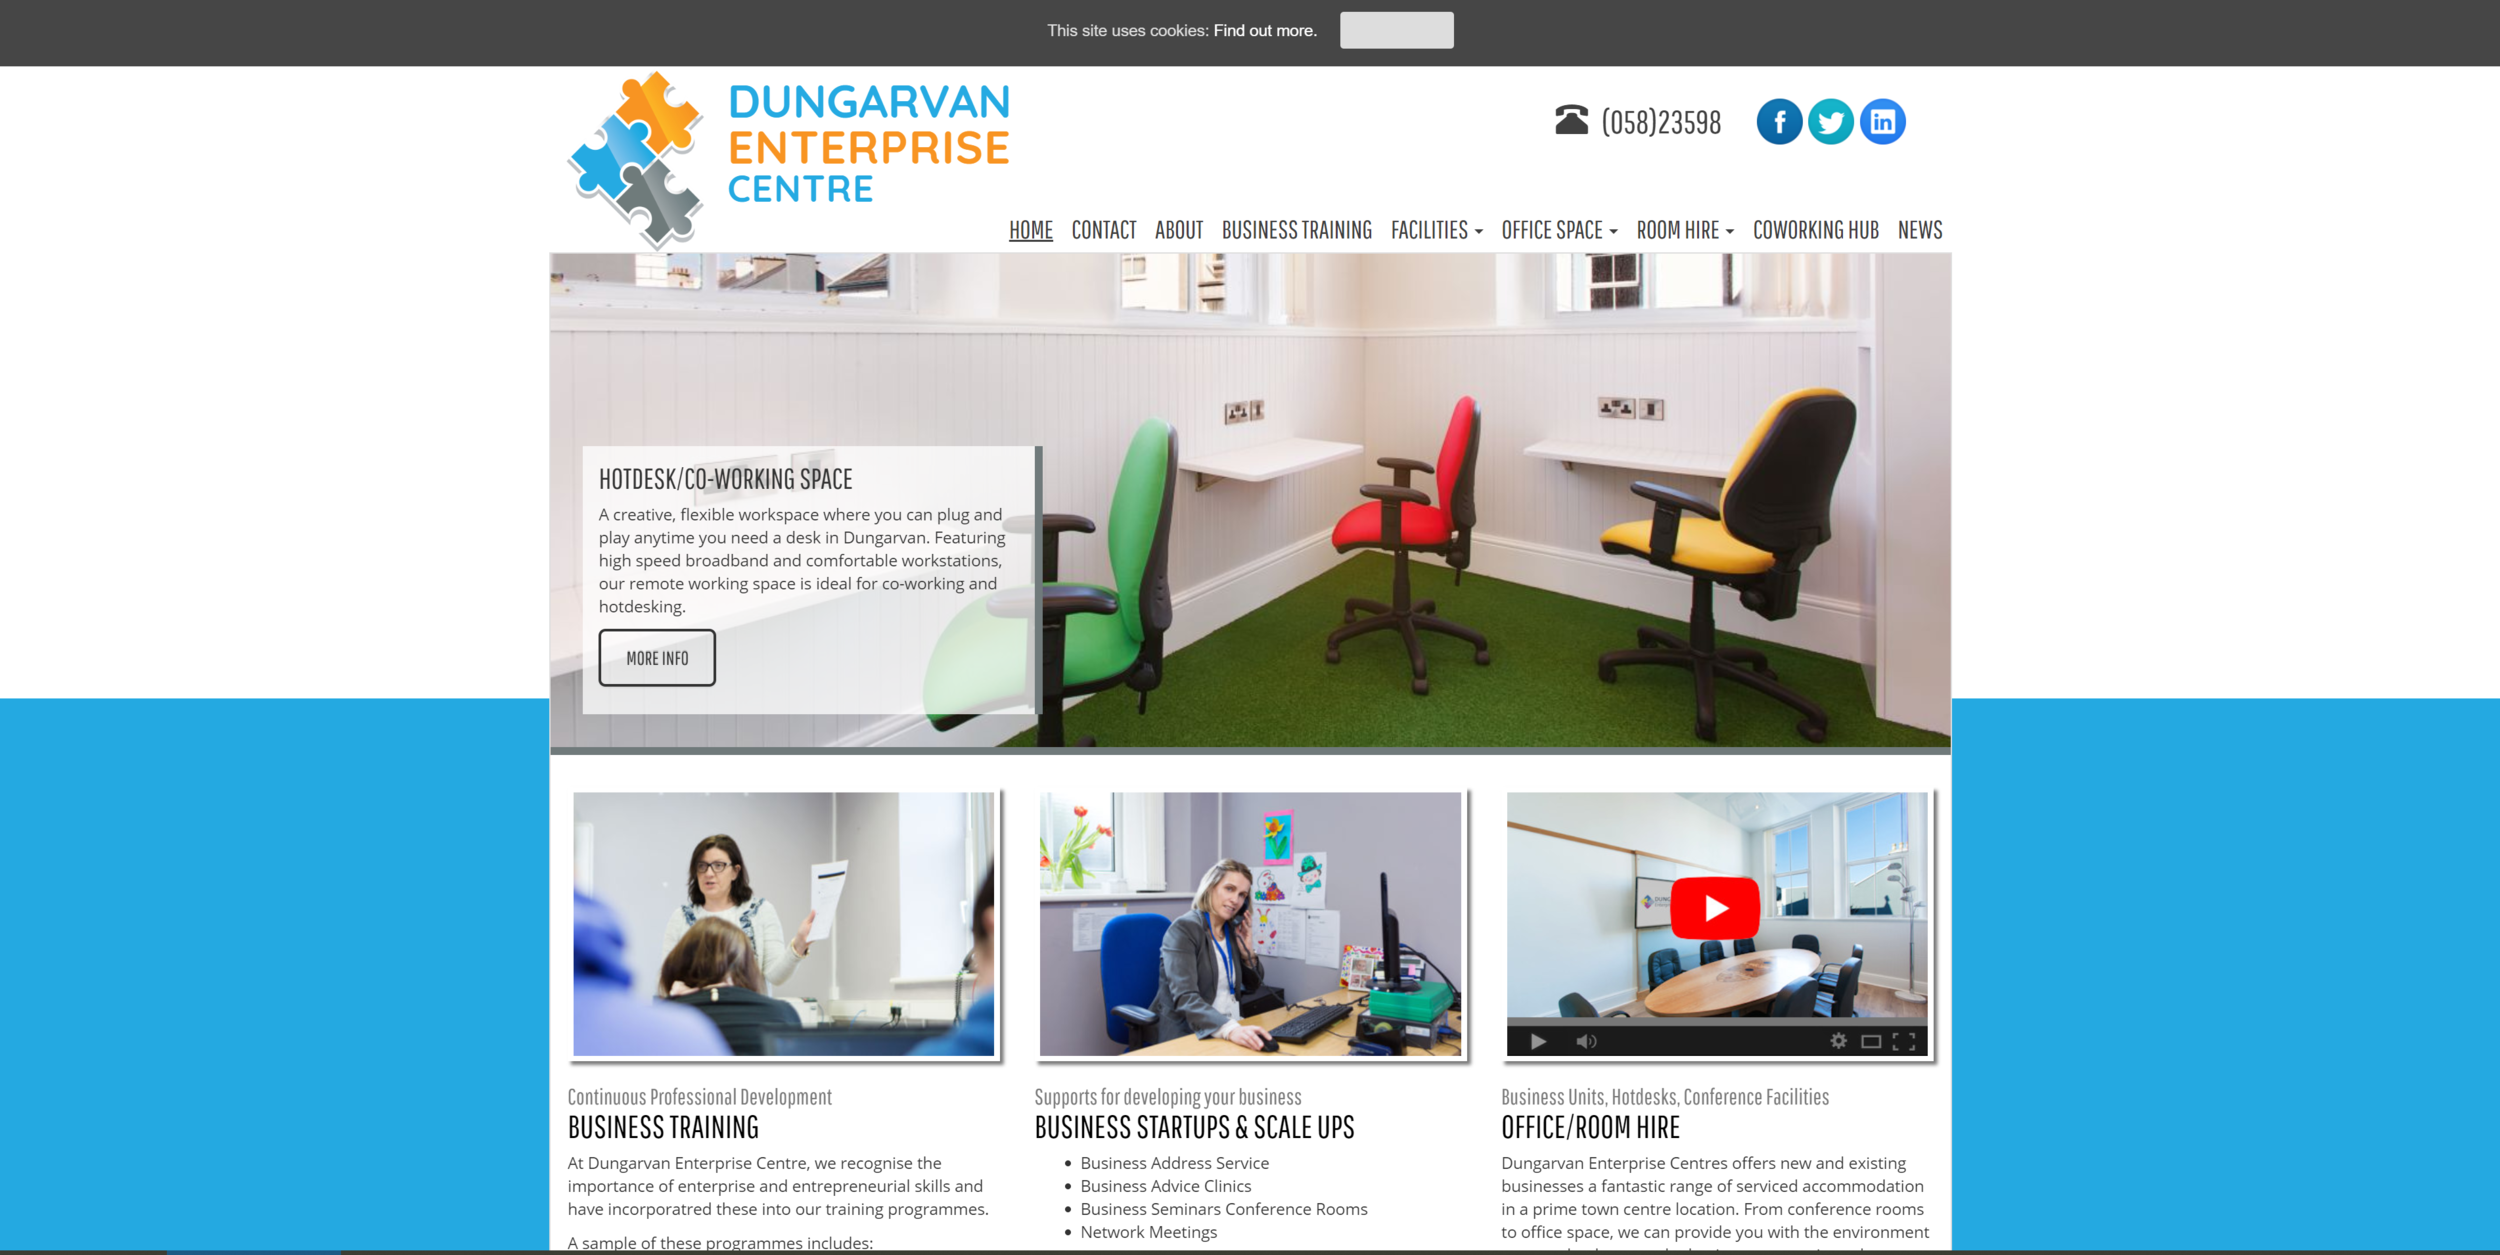 Dungarven Enterprise Centre i s centrally located in the historic Old Friary Building on Lower Main Street and has been refurbished to the highest standards, offering a full range of services at competitive rates. As an innovation centre for start-up and growing businesses, we are here to help, support and give encouragement to people and help them realise their dream.   Quick Contact:  +353 (0)58 23598 info@dungarvanec.com